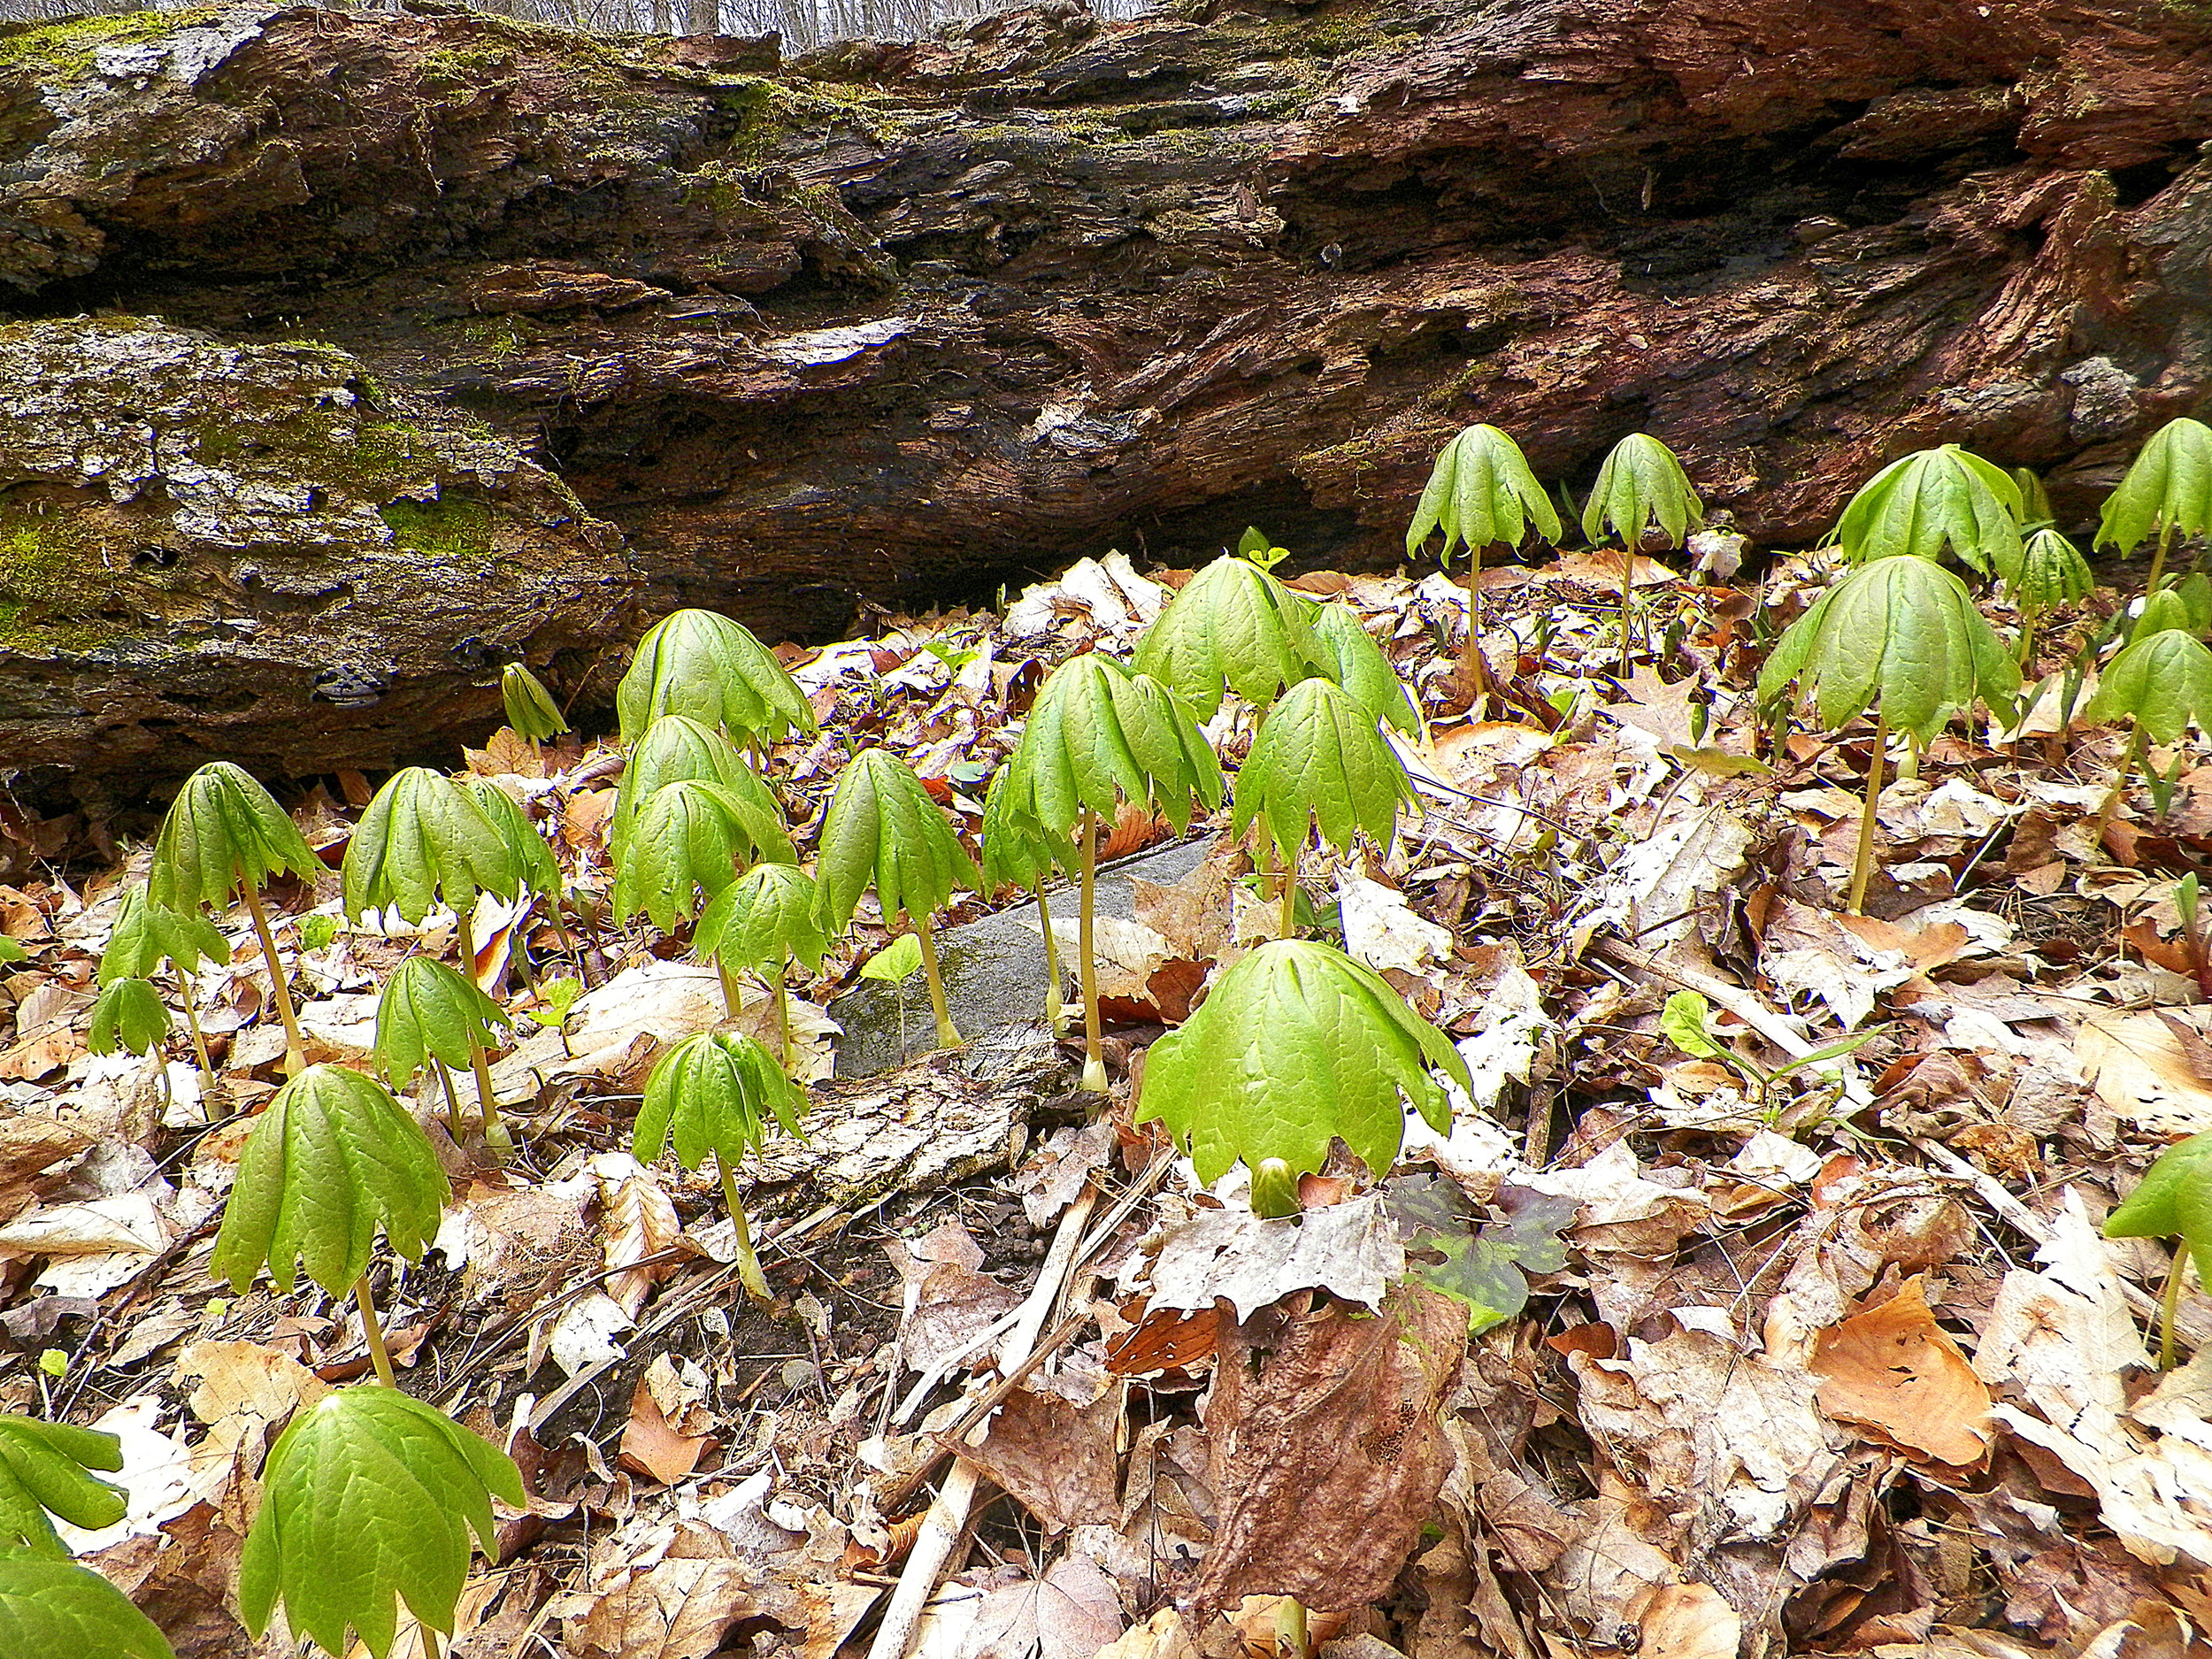 Mayapples bursting forth!